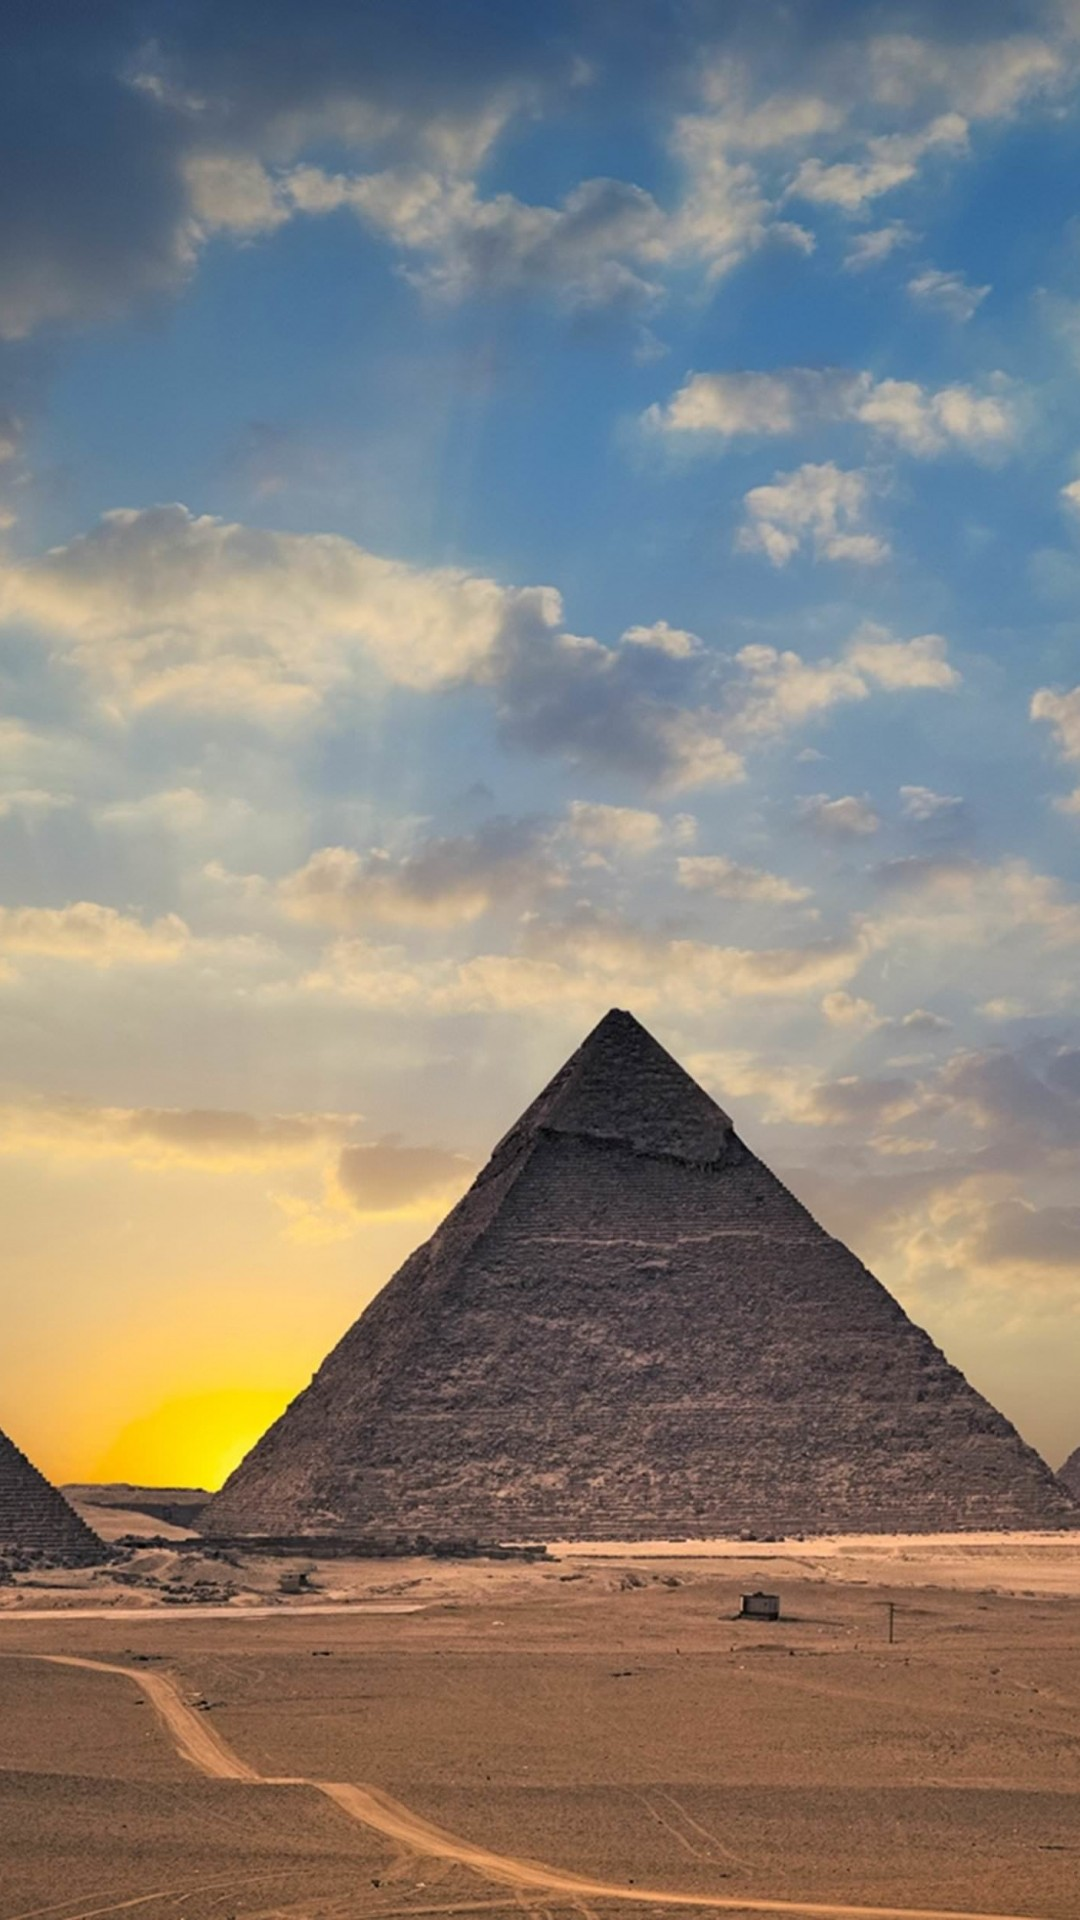 The Great Pyramids of Giza Wallpaper for SONY Xperia Z3